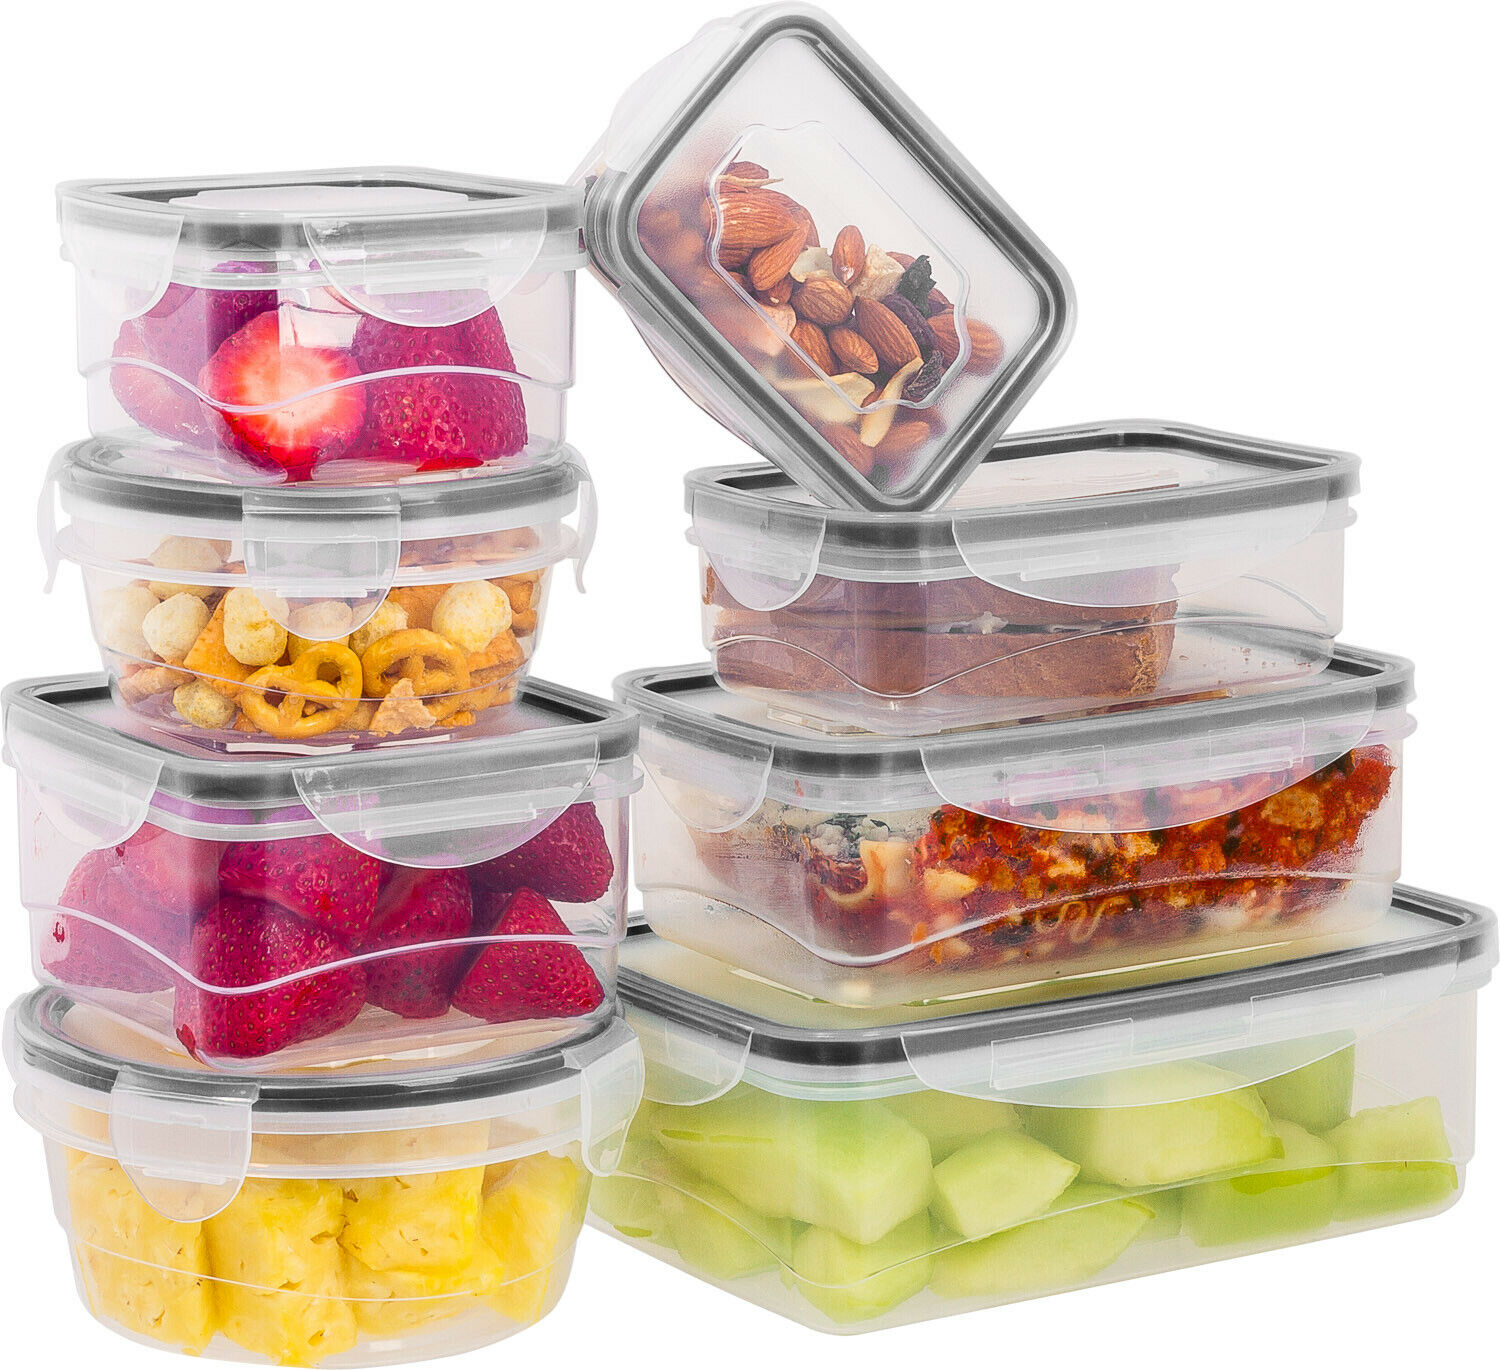 16 Pcs Plastic Food Storage Containers Set With Air Tight Locking Lids 1